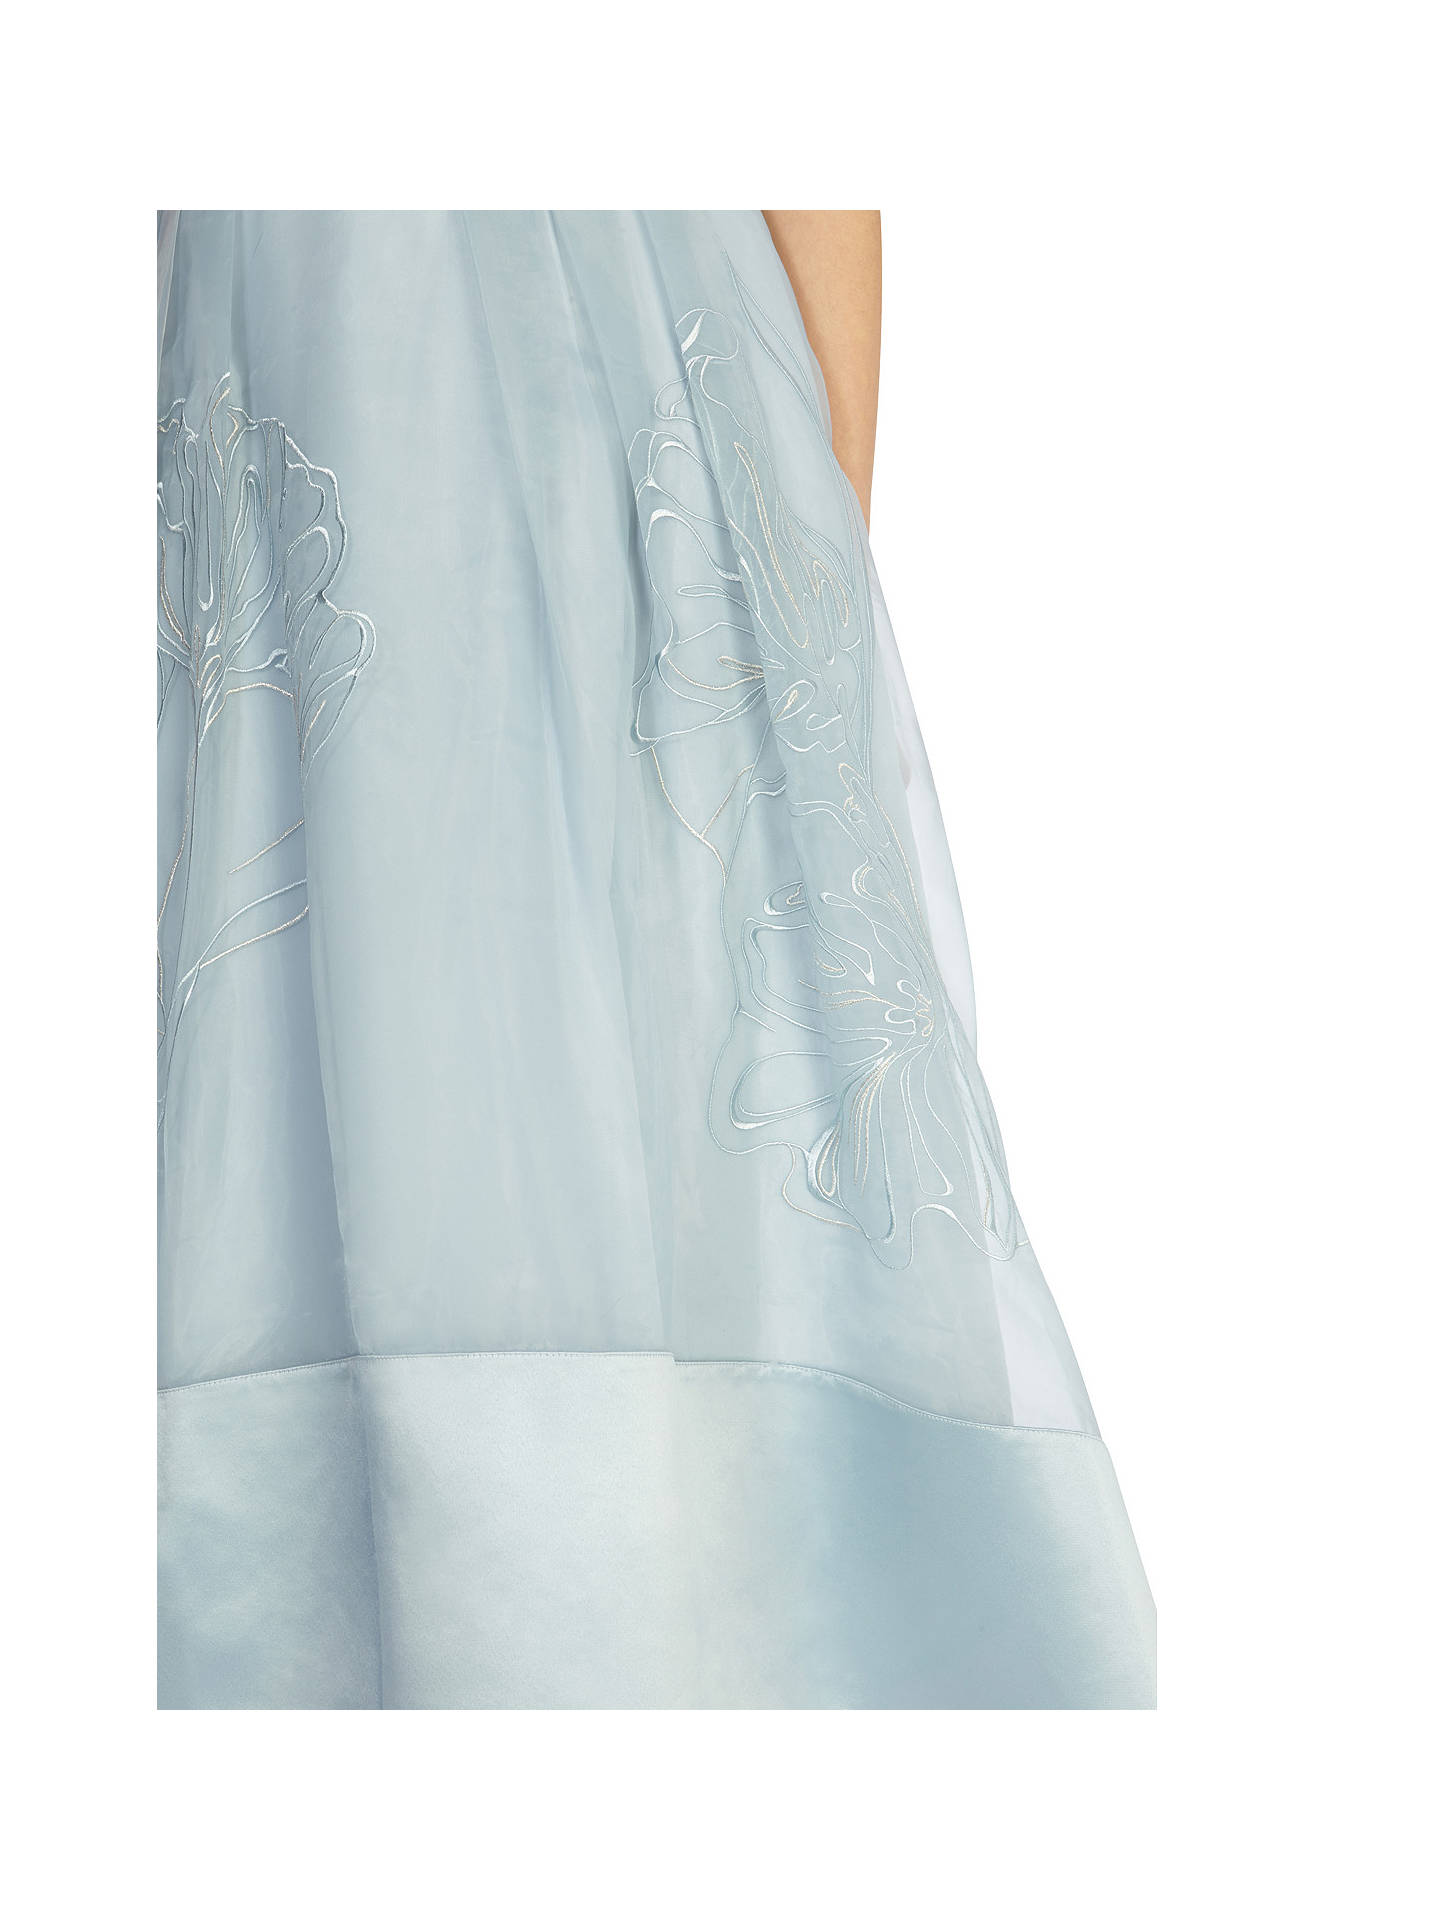 Coast Sulla Organza Skirt, Pale Blue at John Lewis & Partners